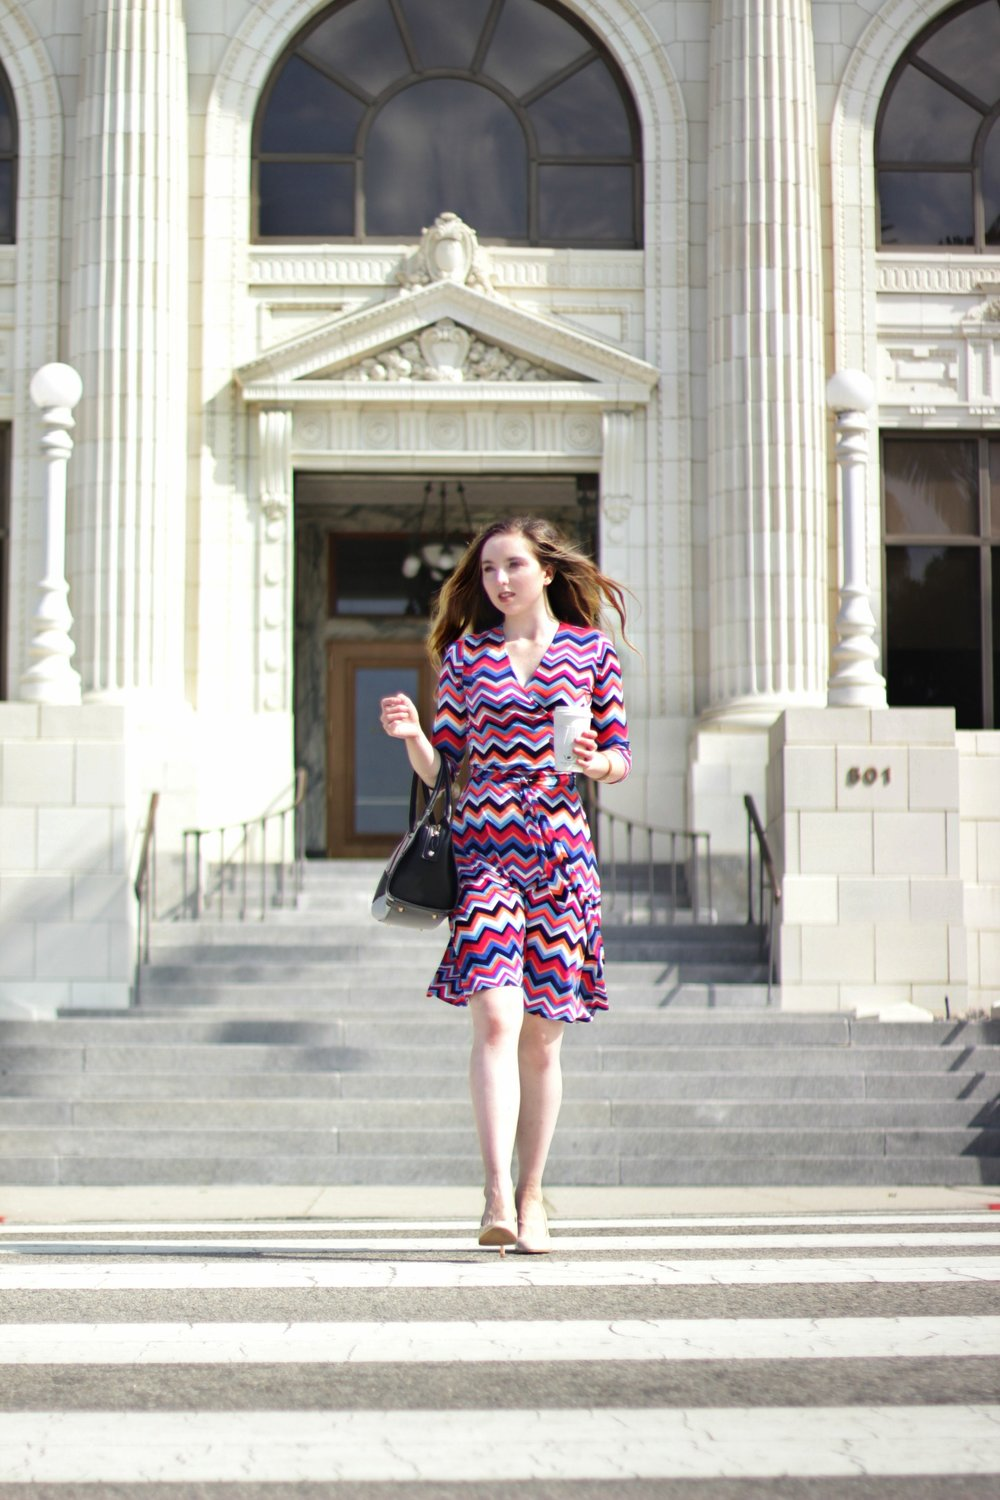 WRAP UP LOSE ENDS WITH AN EASY BREEZY WRAP DRESS - SHOP MY FAVORITE WORK WARDROBE STAPLE BY LEOTA